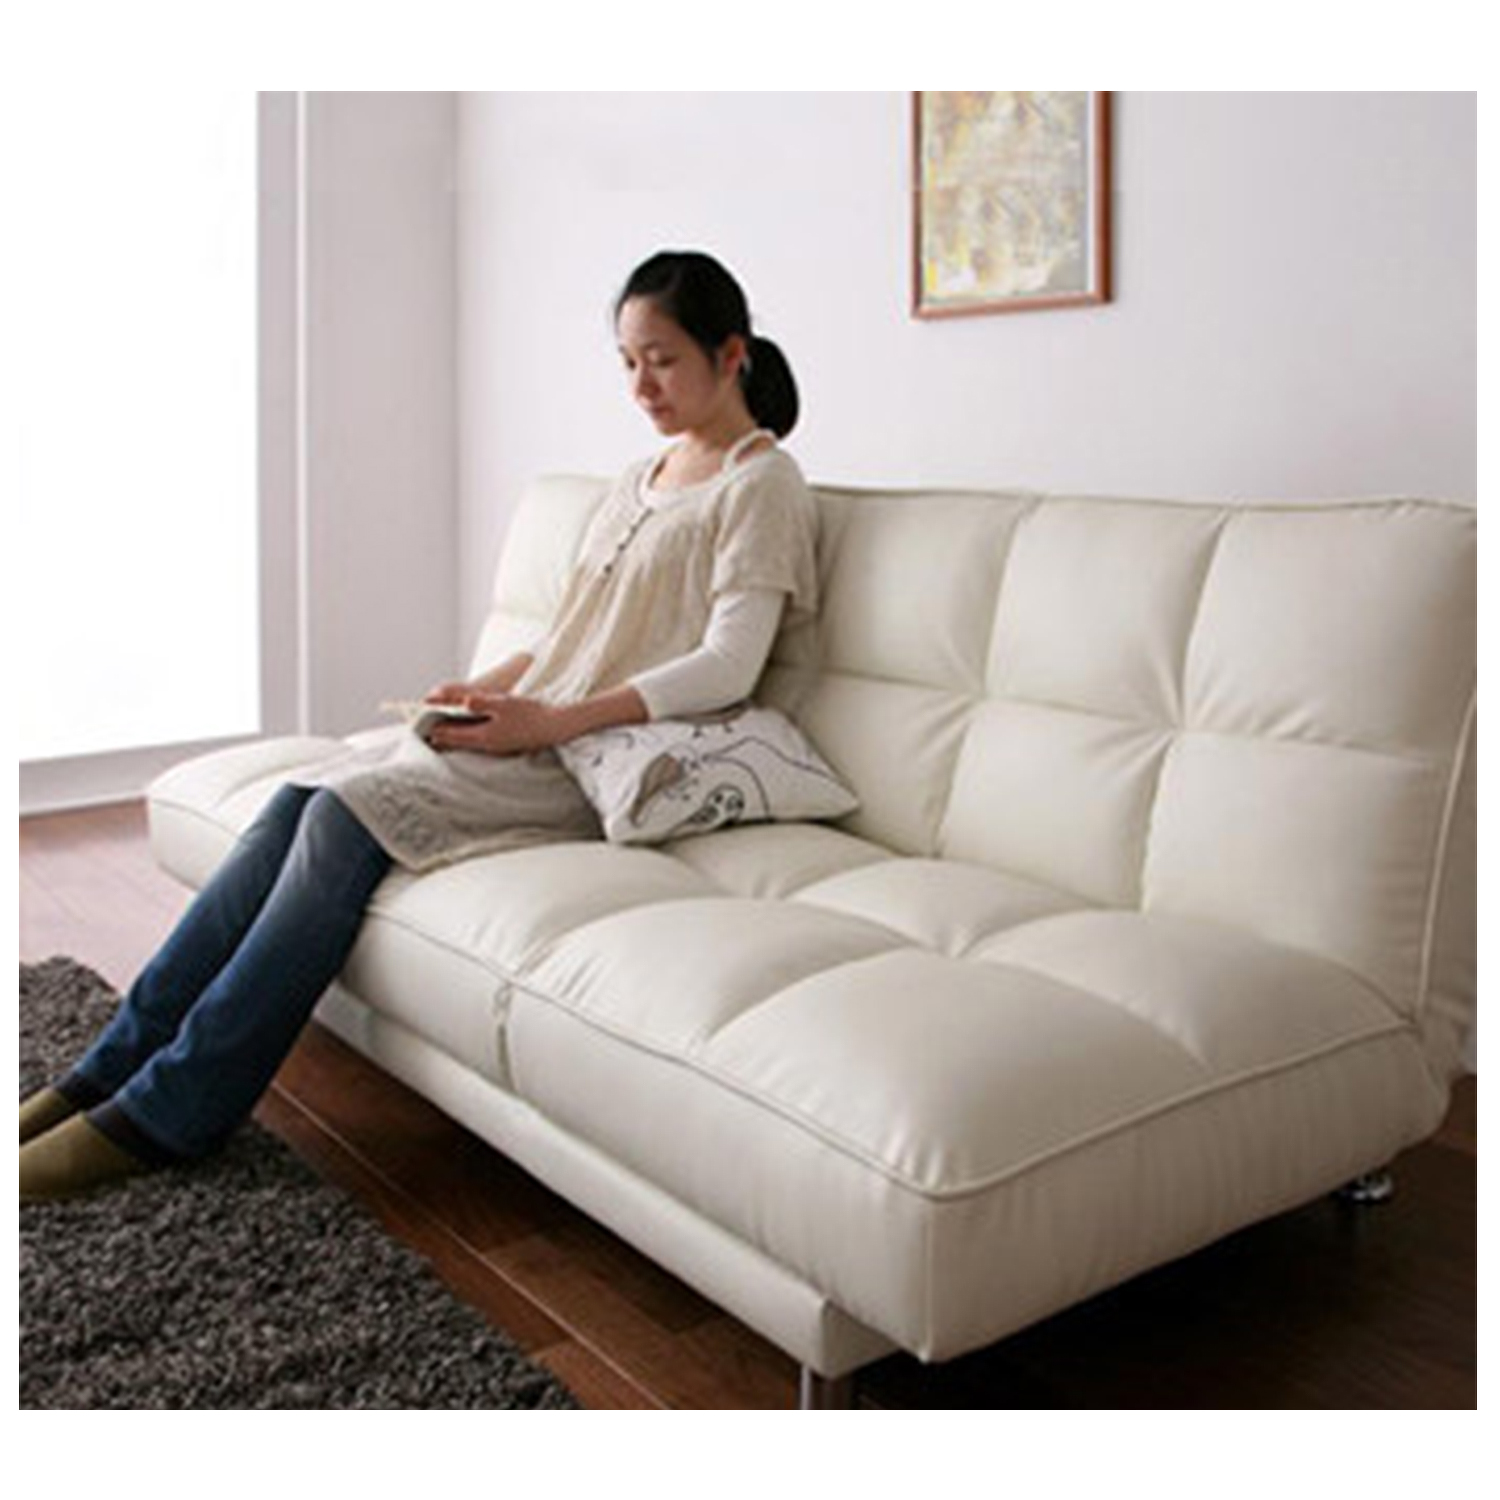 Furniture Source Philippines | Visby 3-in-1 Sofabed (White Faux Leather)